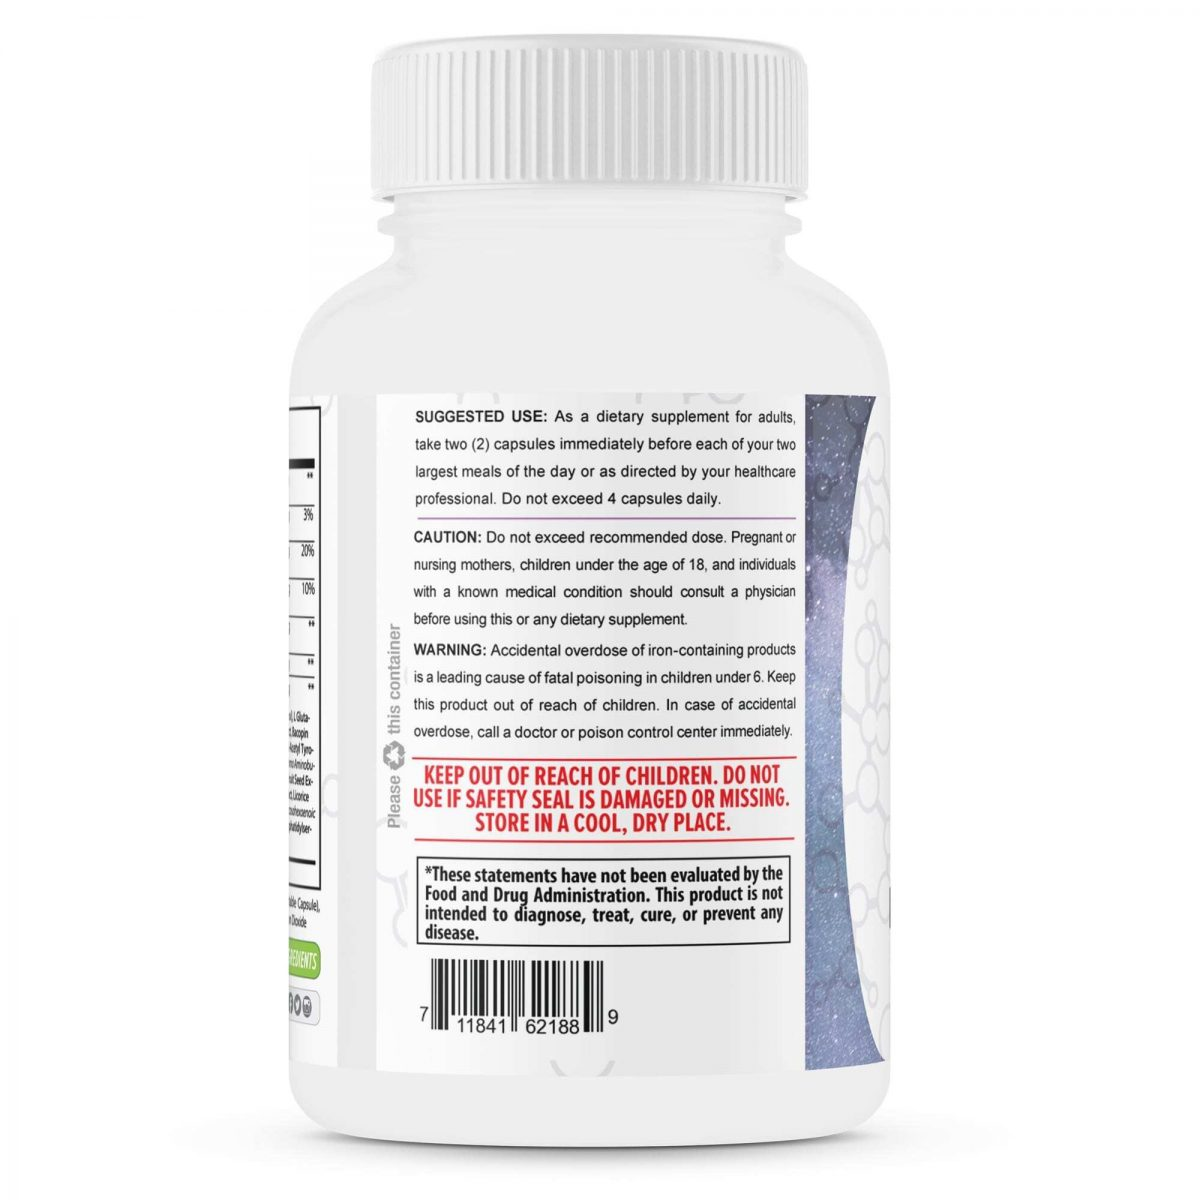 Powerful Nootropics – Neuro Capsules - 60 Capsules - TerraForm Nutrition-3339